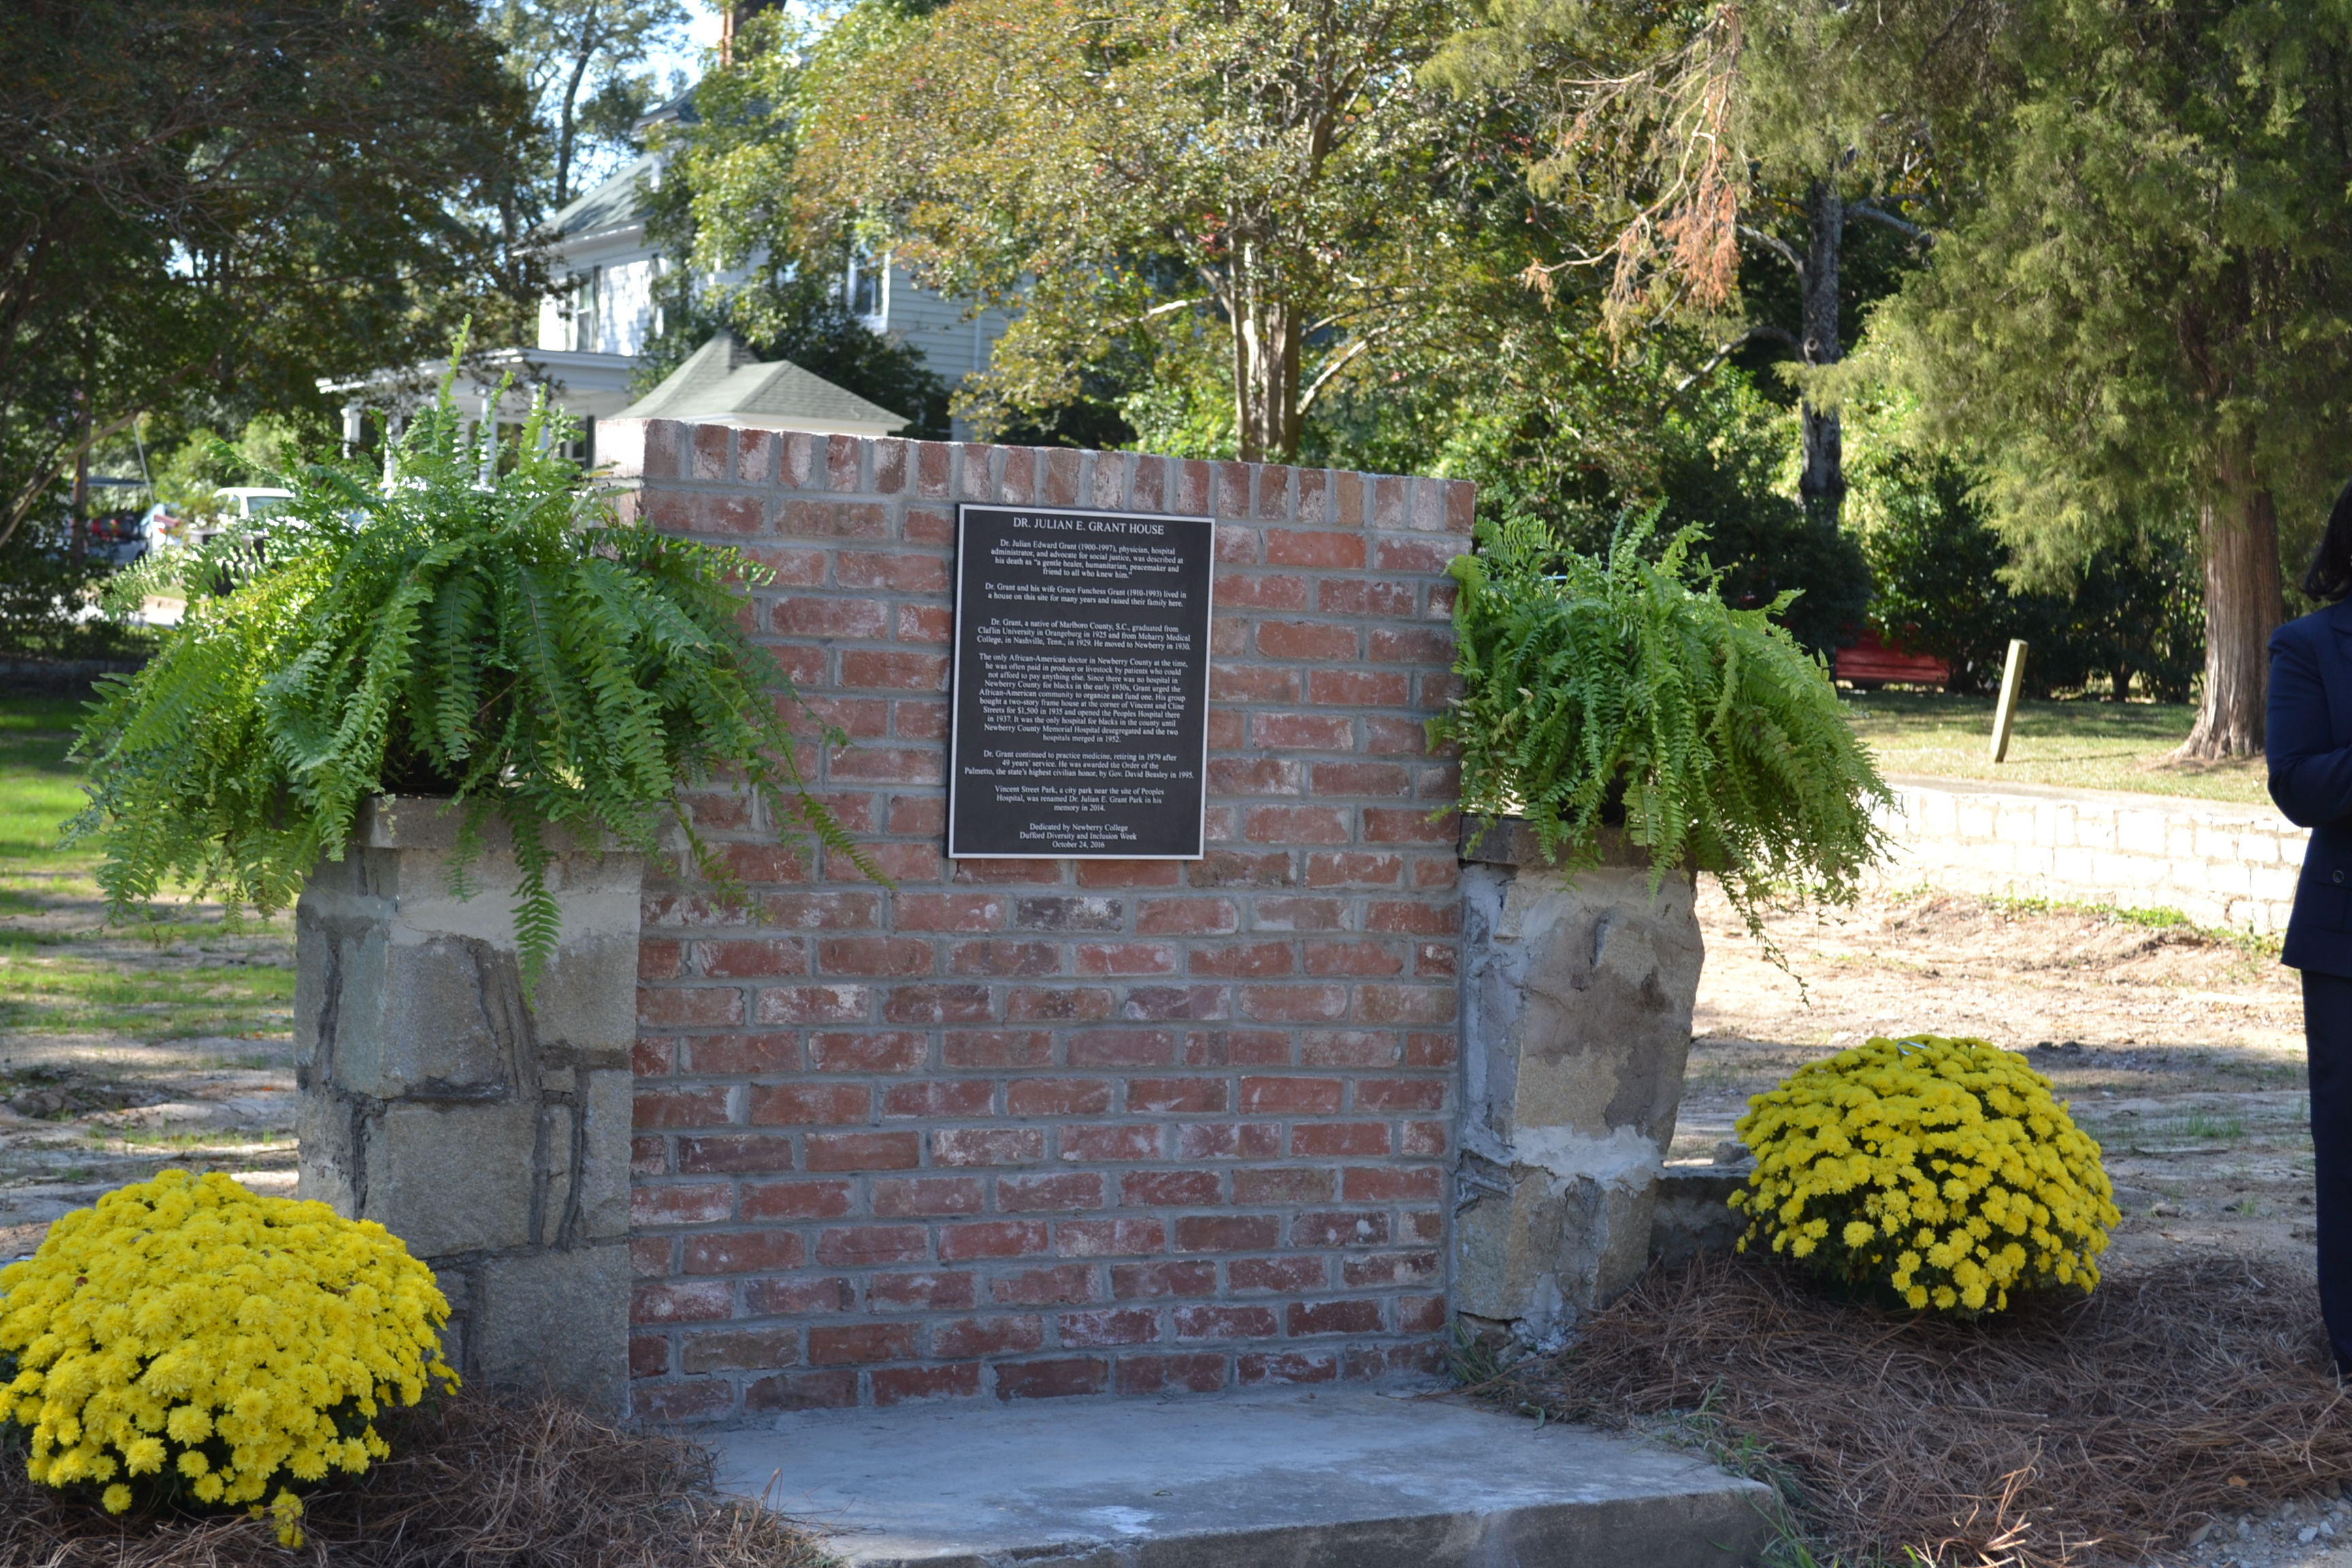 Dr. Grant's commerative marker with plaque